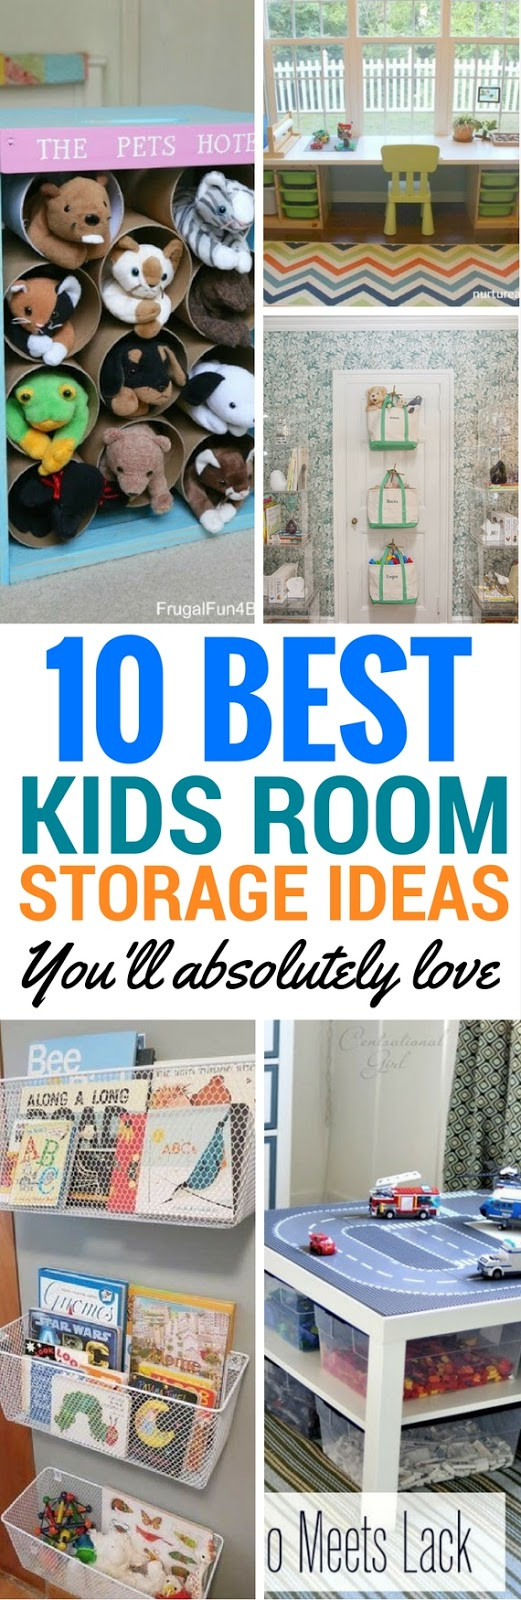 Cheap Organizing Ideas For Kids Rooms  10 Best Storage Ideas For Your Kids Room Craftsonfire